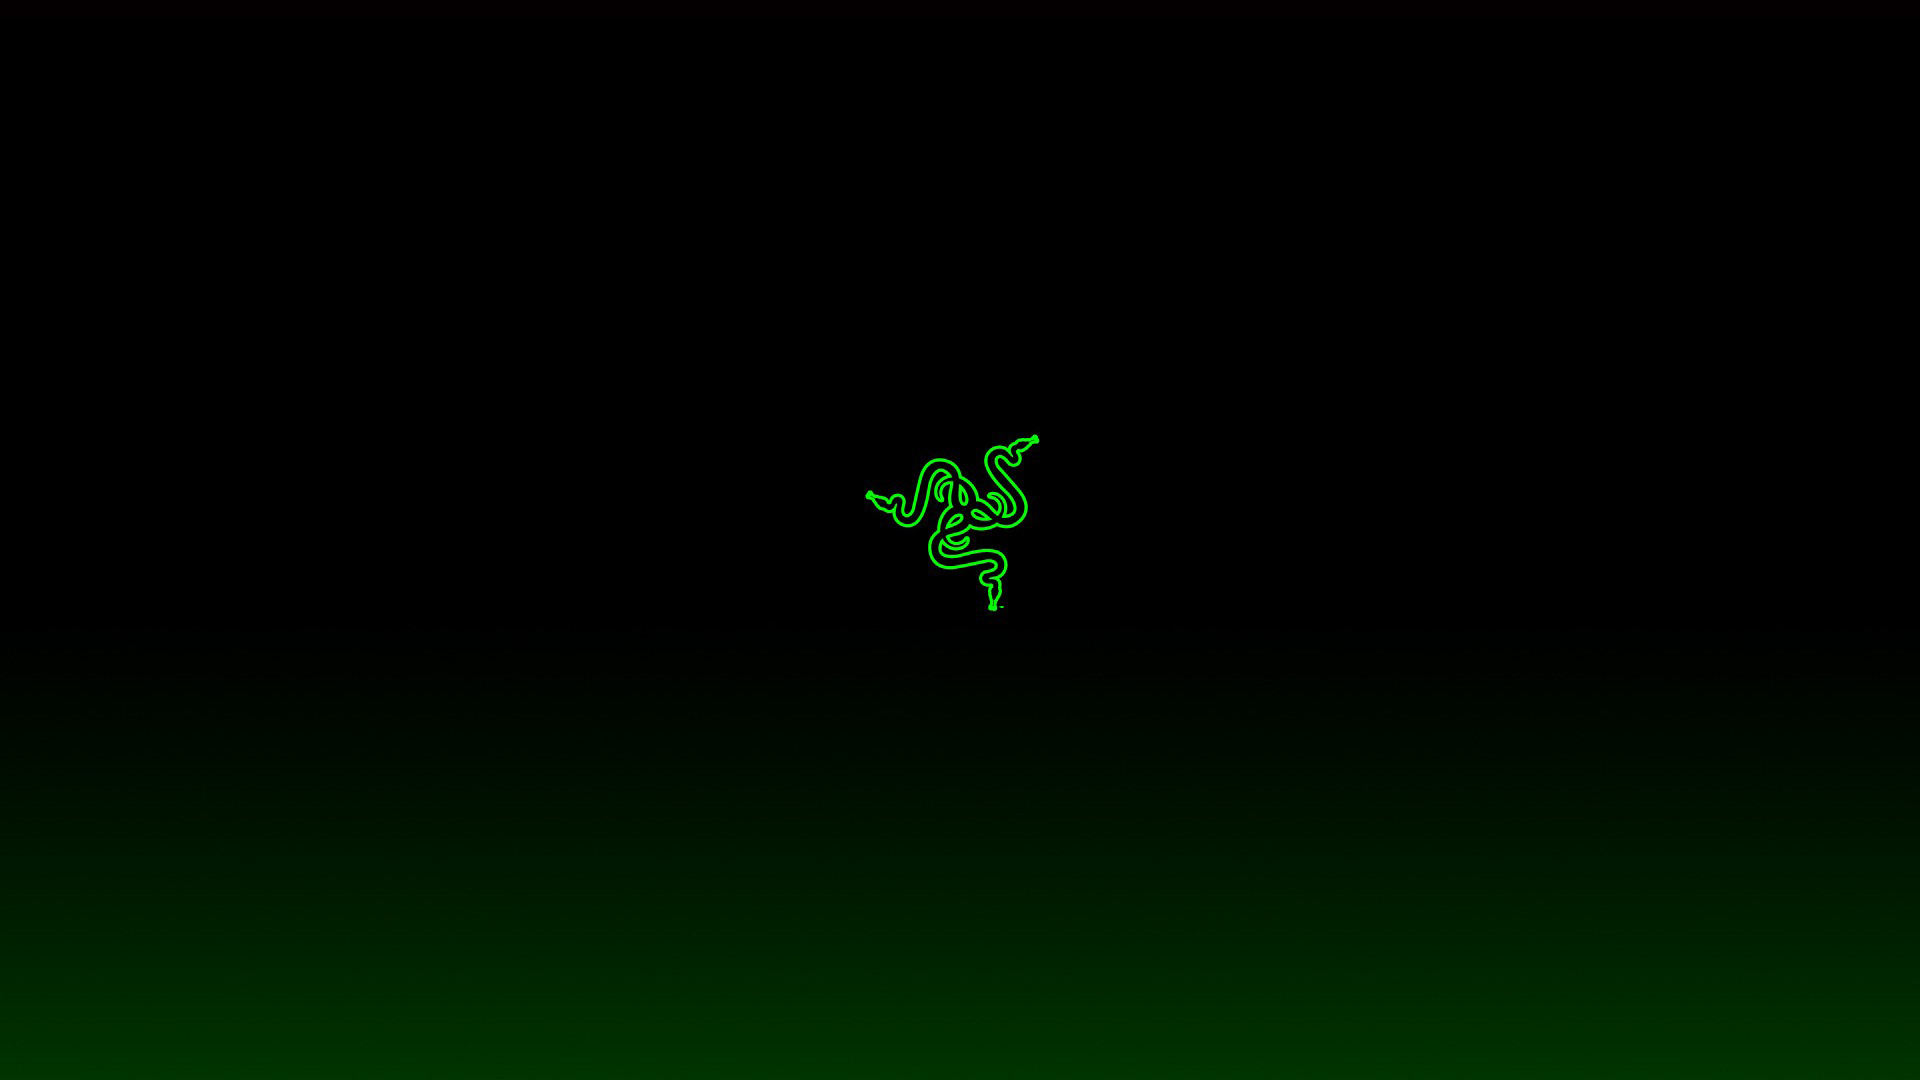 razer wallpaper 1920x1080 red - photo #33